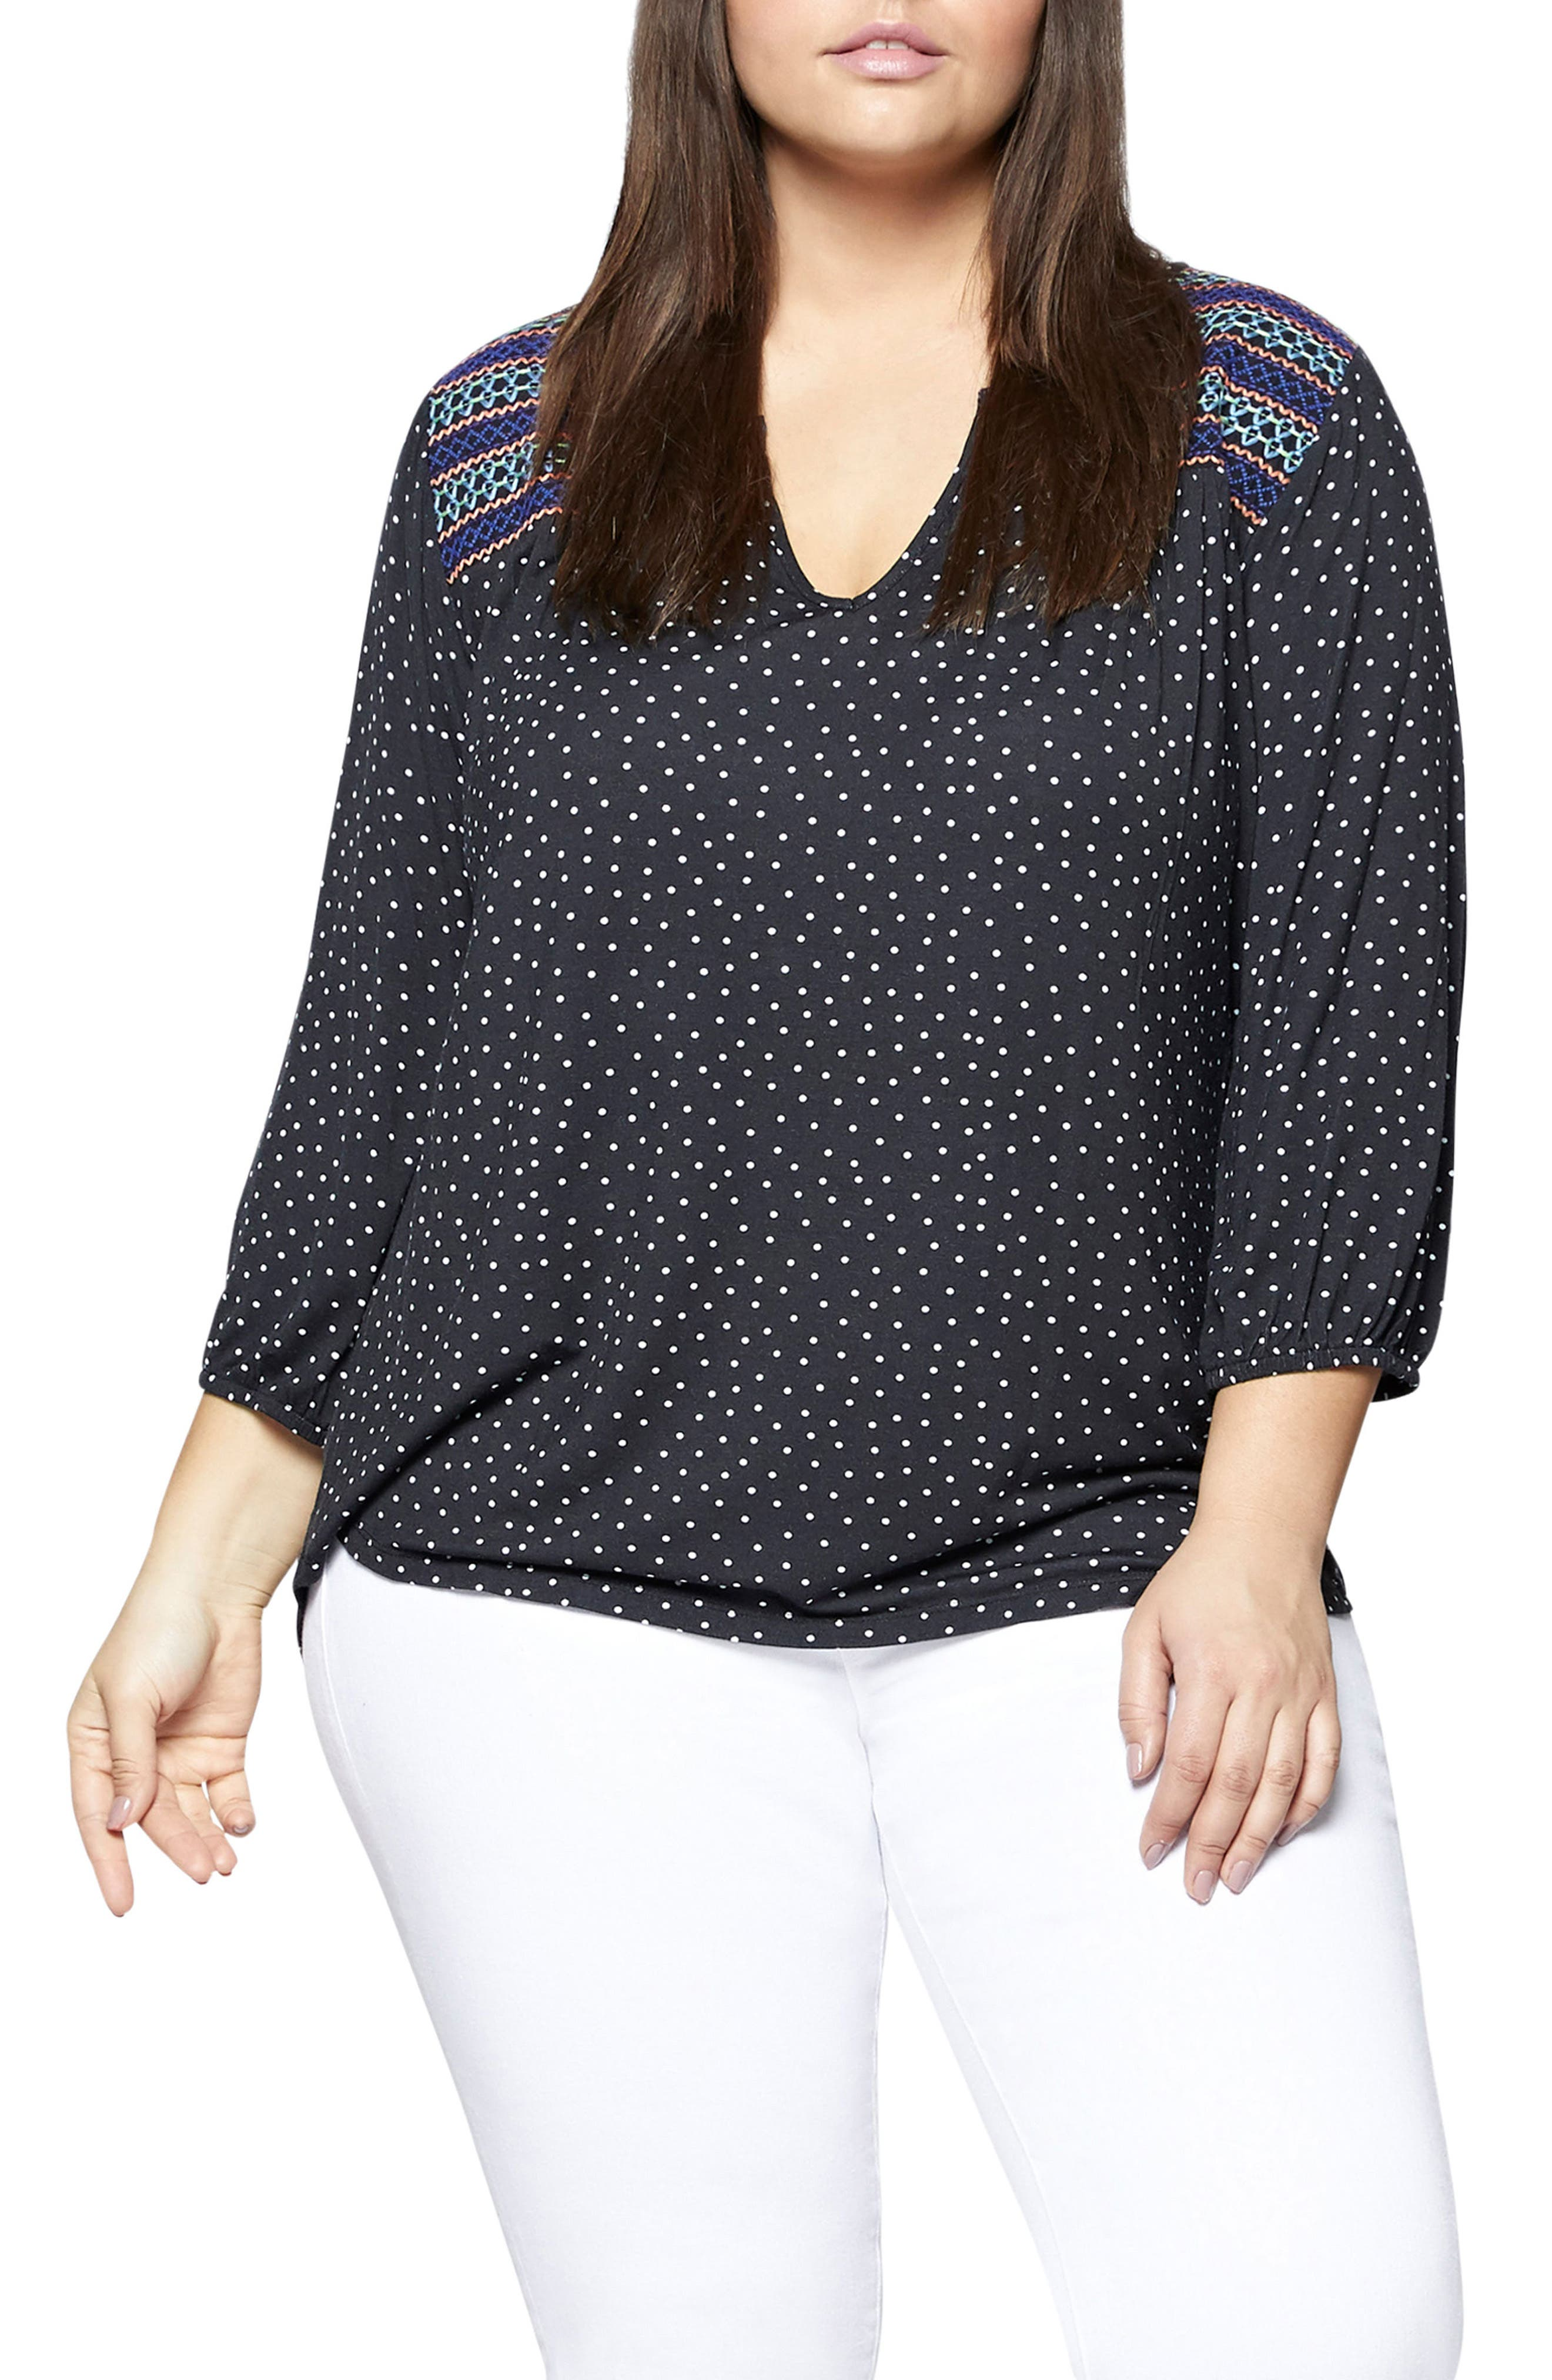 Anabelle Embroidered Knit Top,                             Main thumbnail 1, color,                             Black Polka Dot